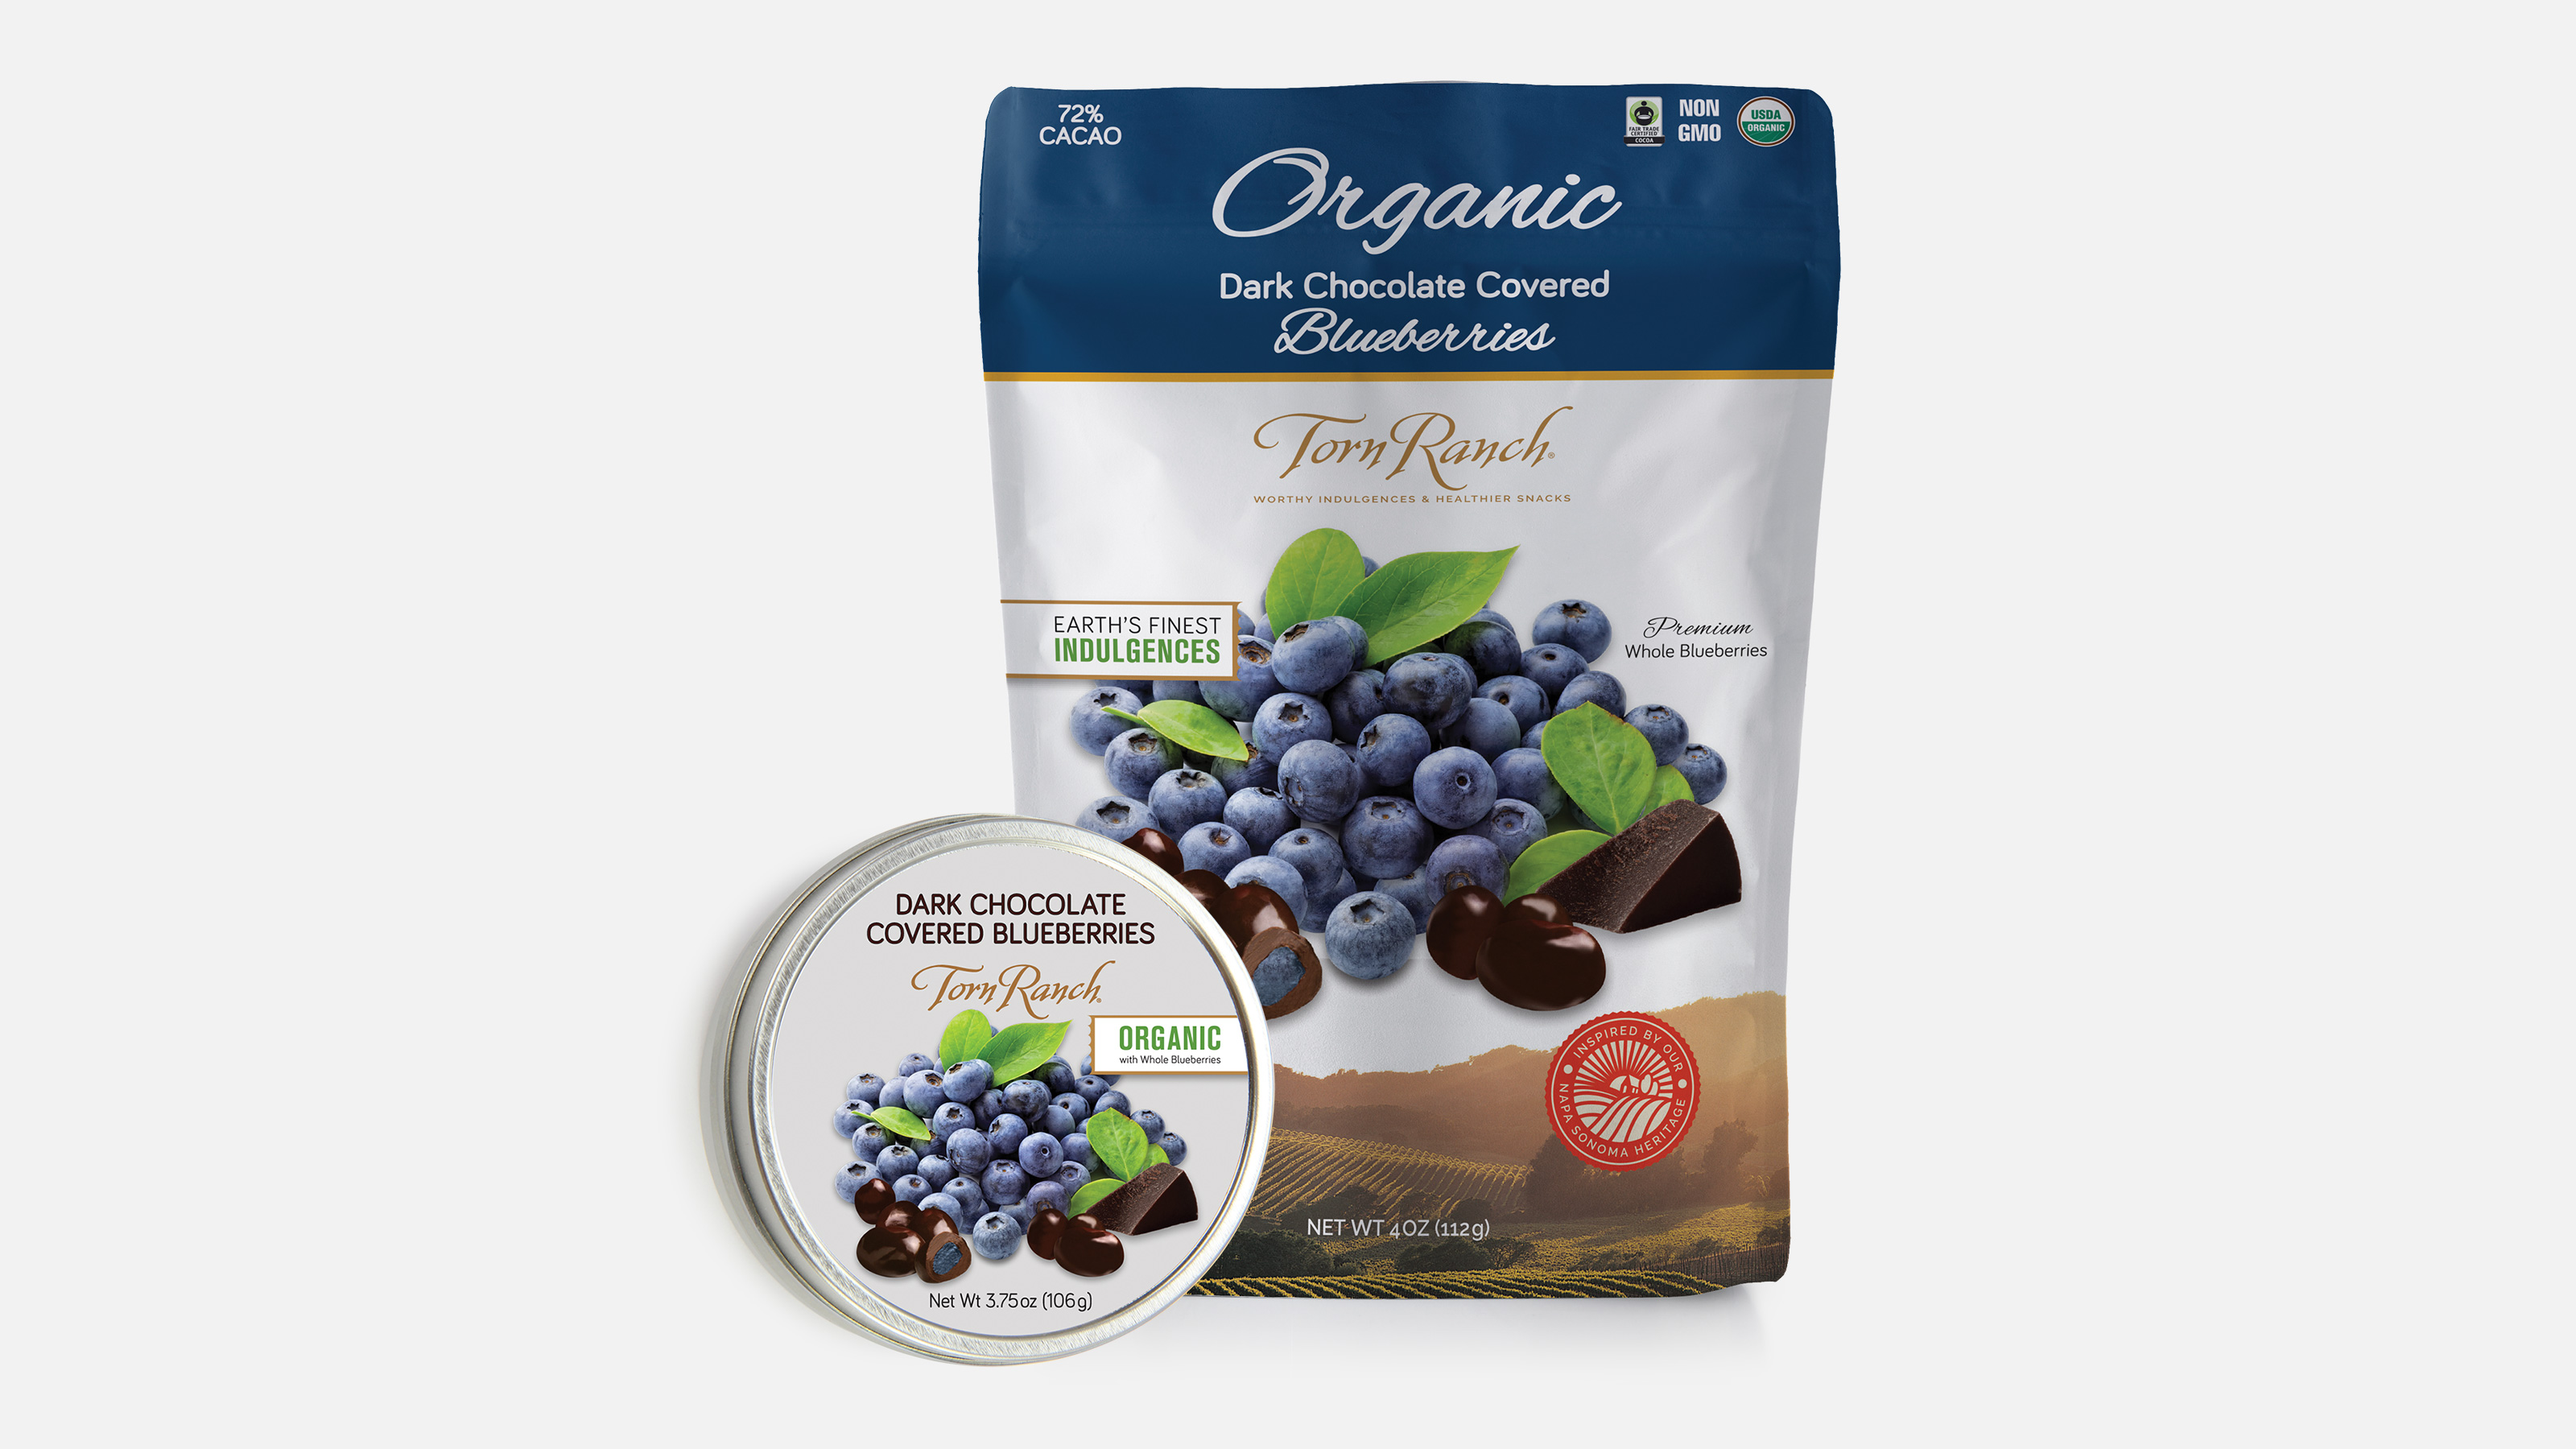 Torn Ranch chocolate covered blueberries. Pouch and can packaging.